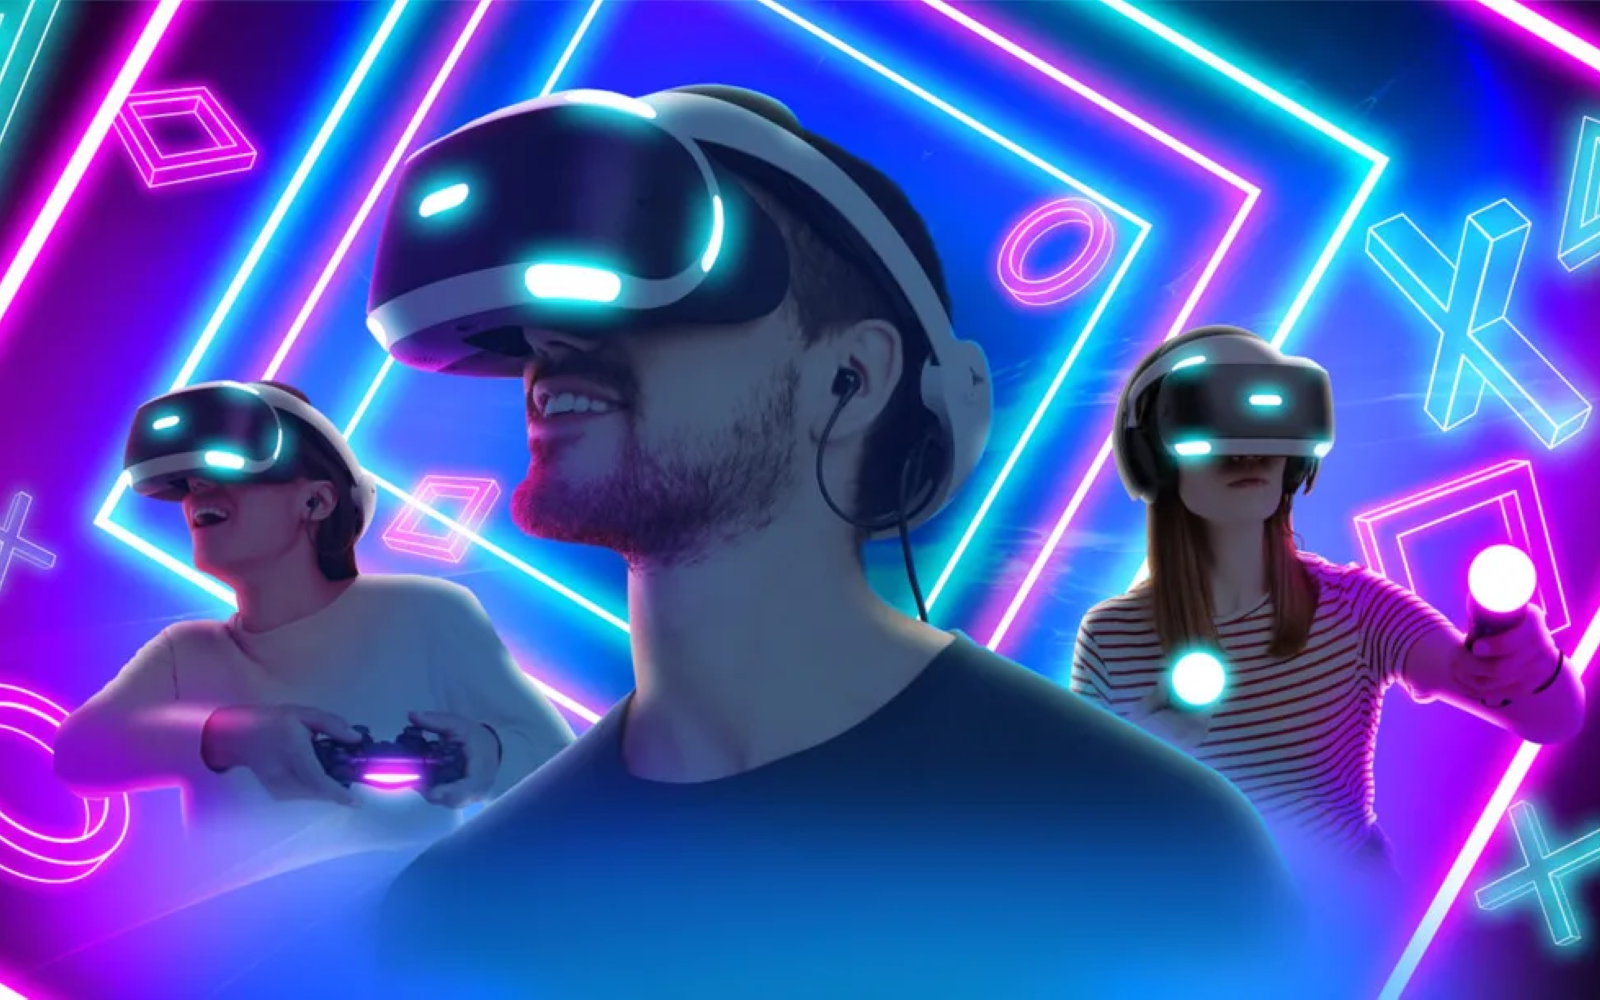 Here Are 6 New Games Coming To PS VR This Year. Plus News On The Next Generation Of PS VR